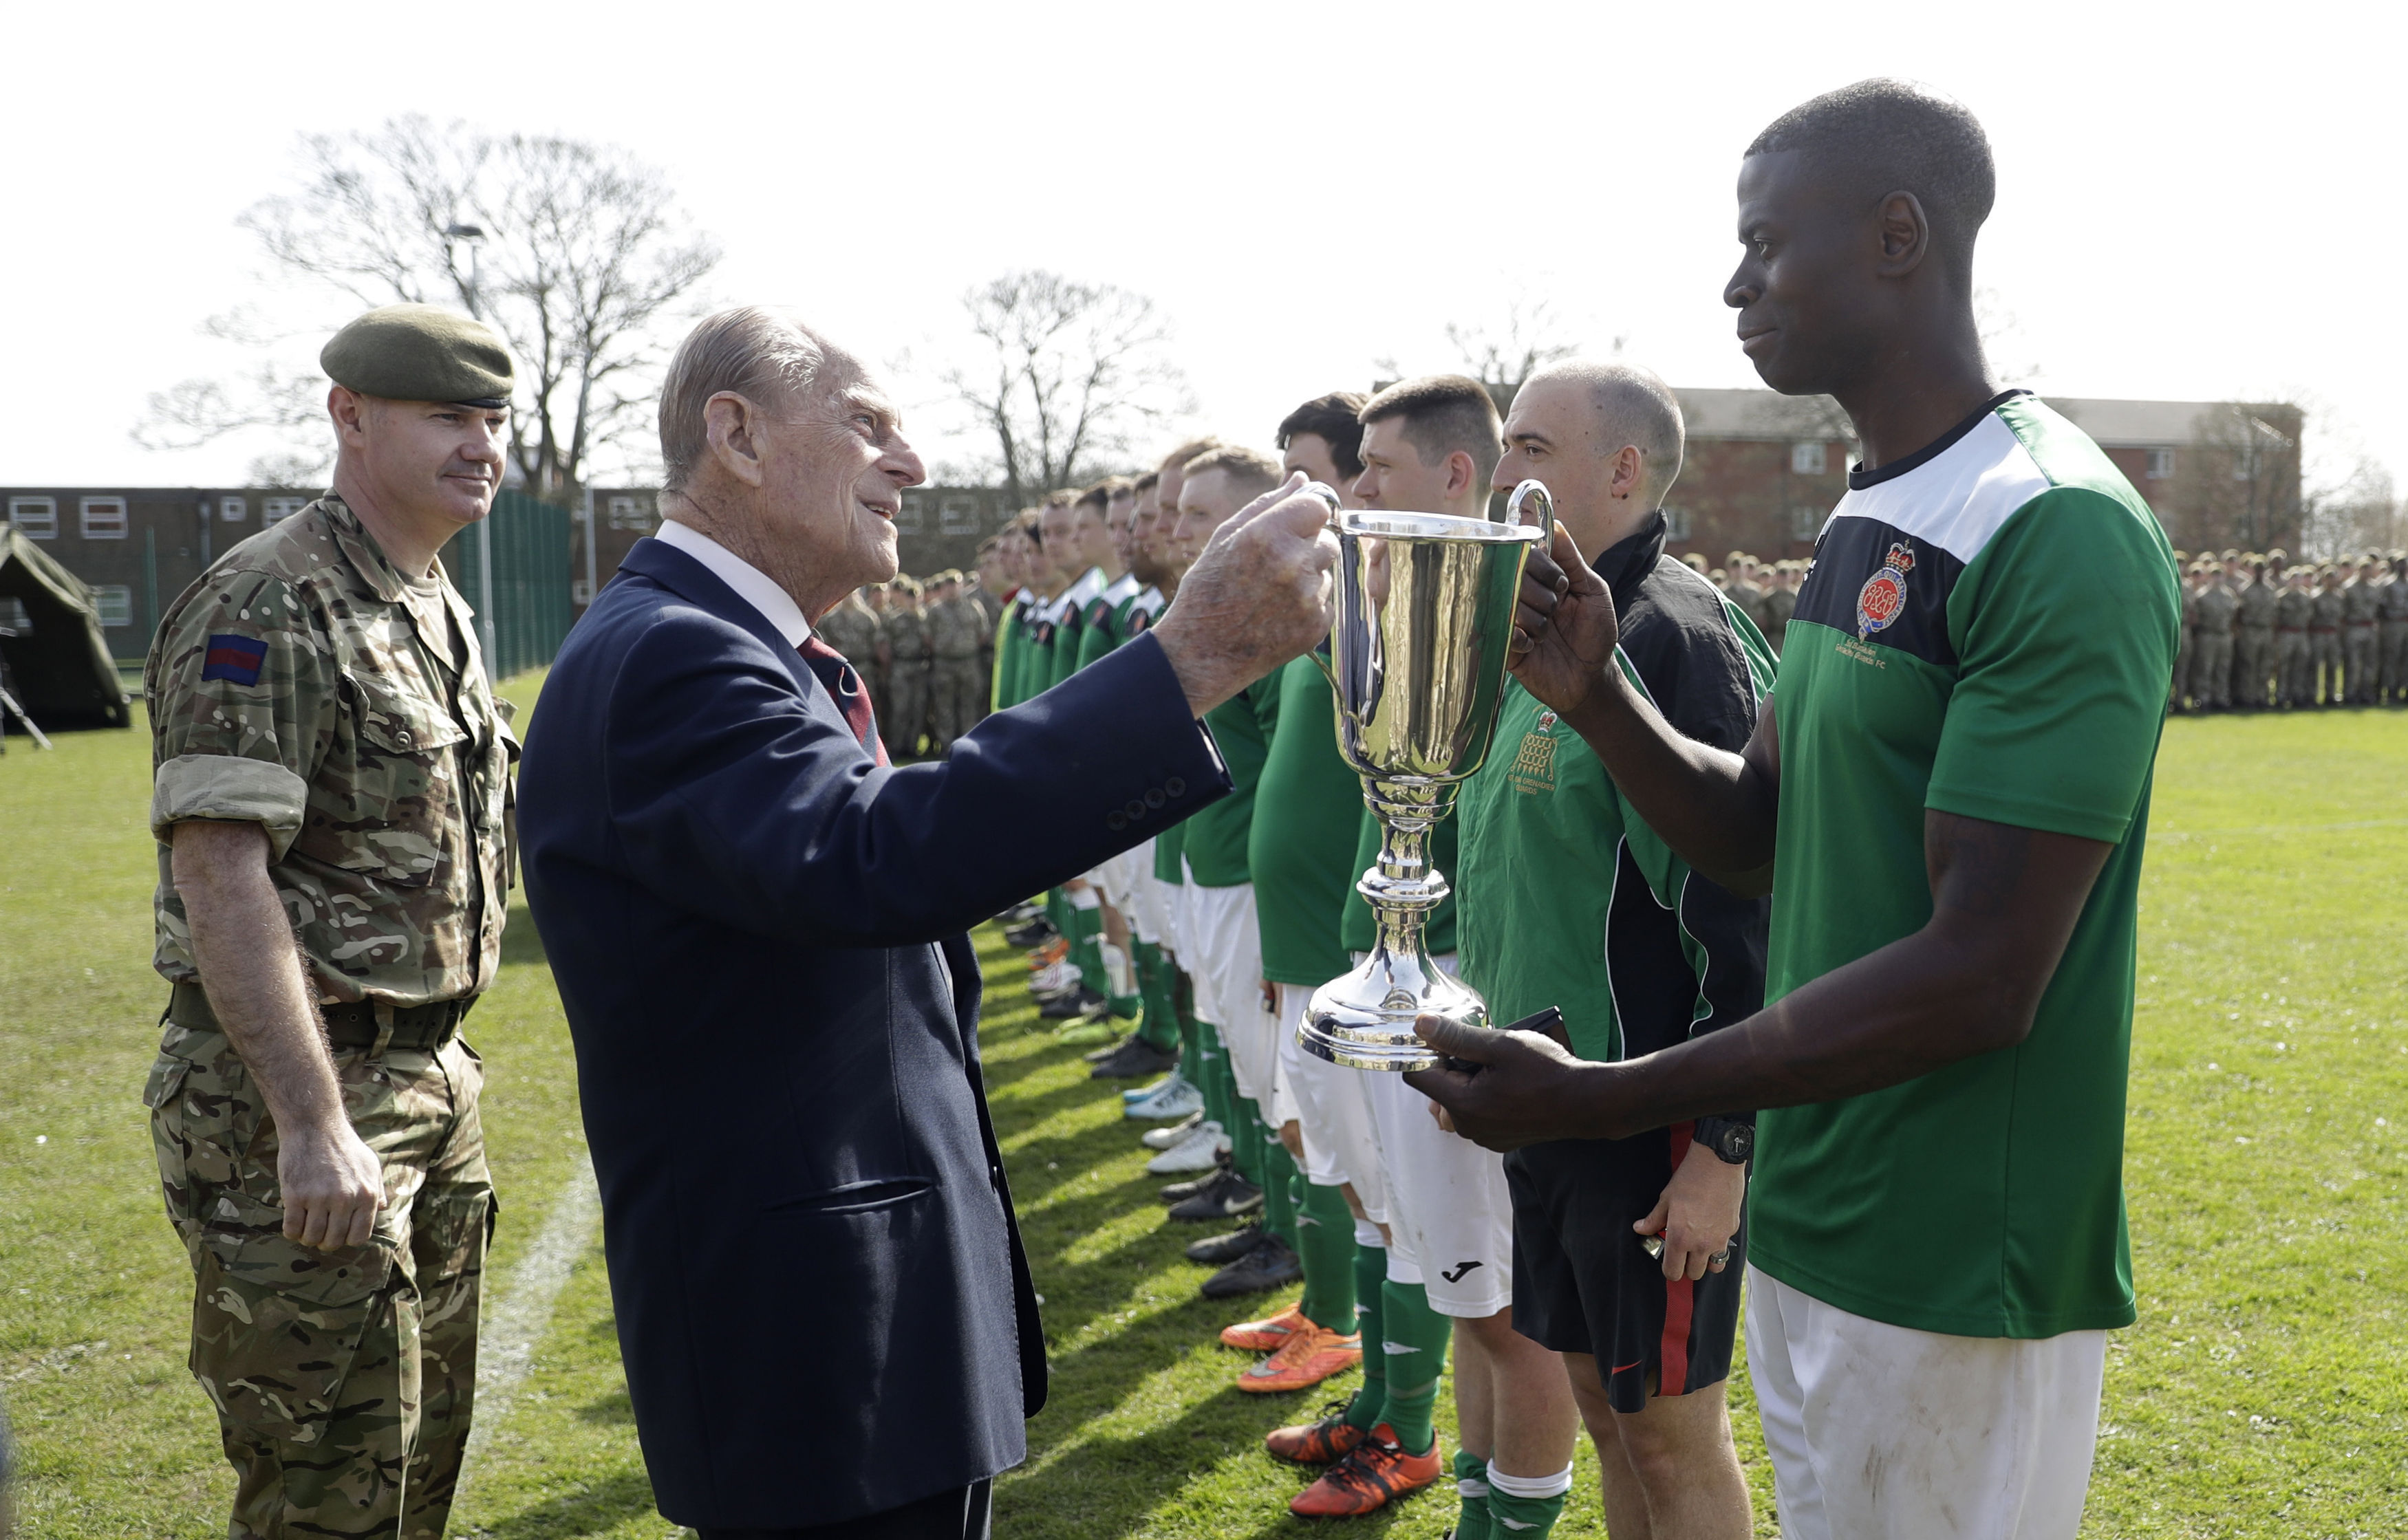 The Duke of Edinburgh presents the Manchester Cup to the Support Company